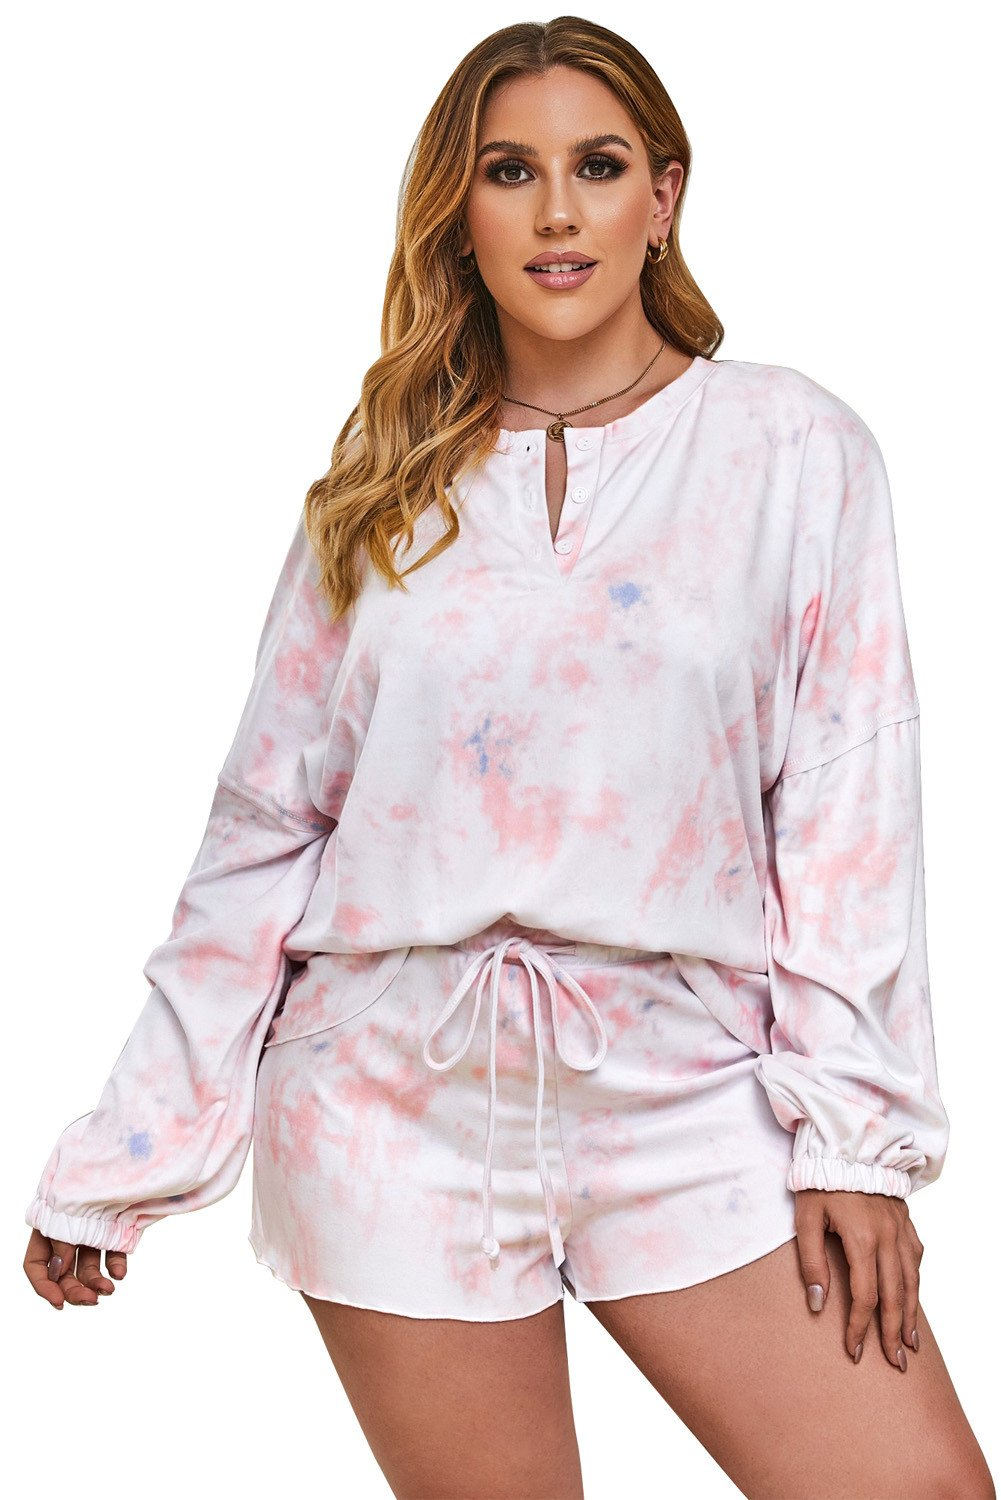 Juniper Loungewear Set - Pink